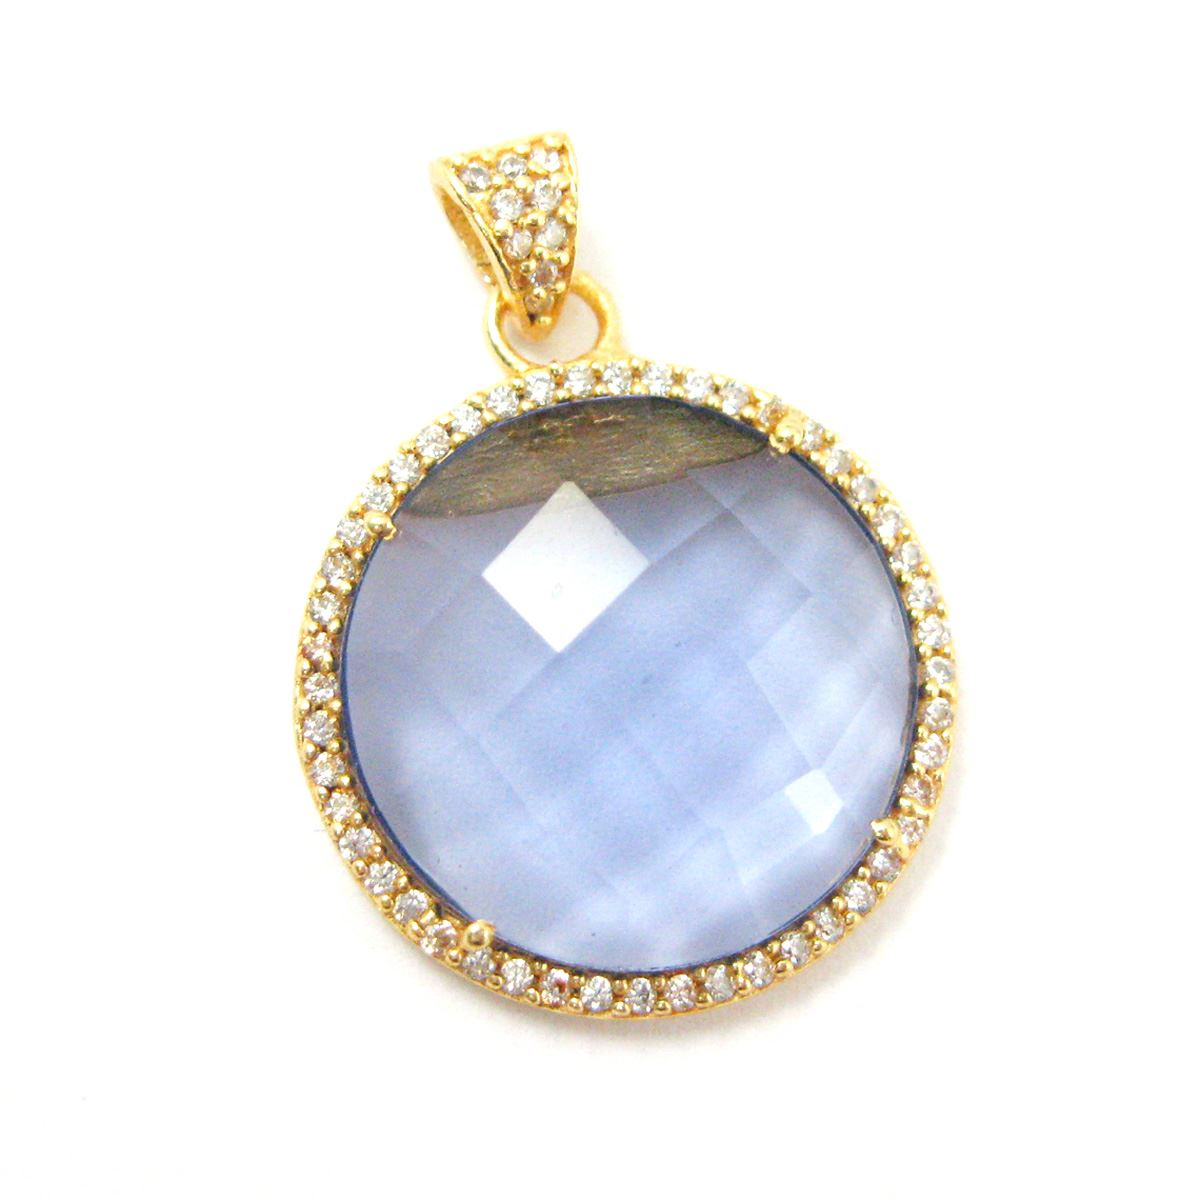 22k Gold plated Sterling Silver Pave Bezel Gemstone Pendant - Cubic Zirconia Pave Setting -  Round Faceted Stone- iolite Quartz- 21mm